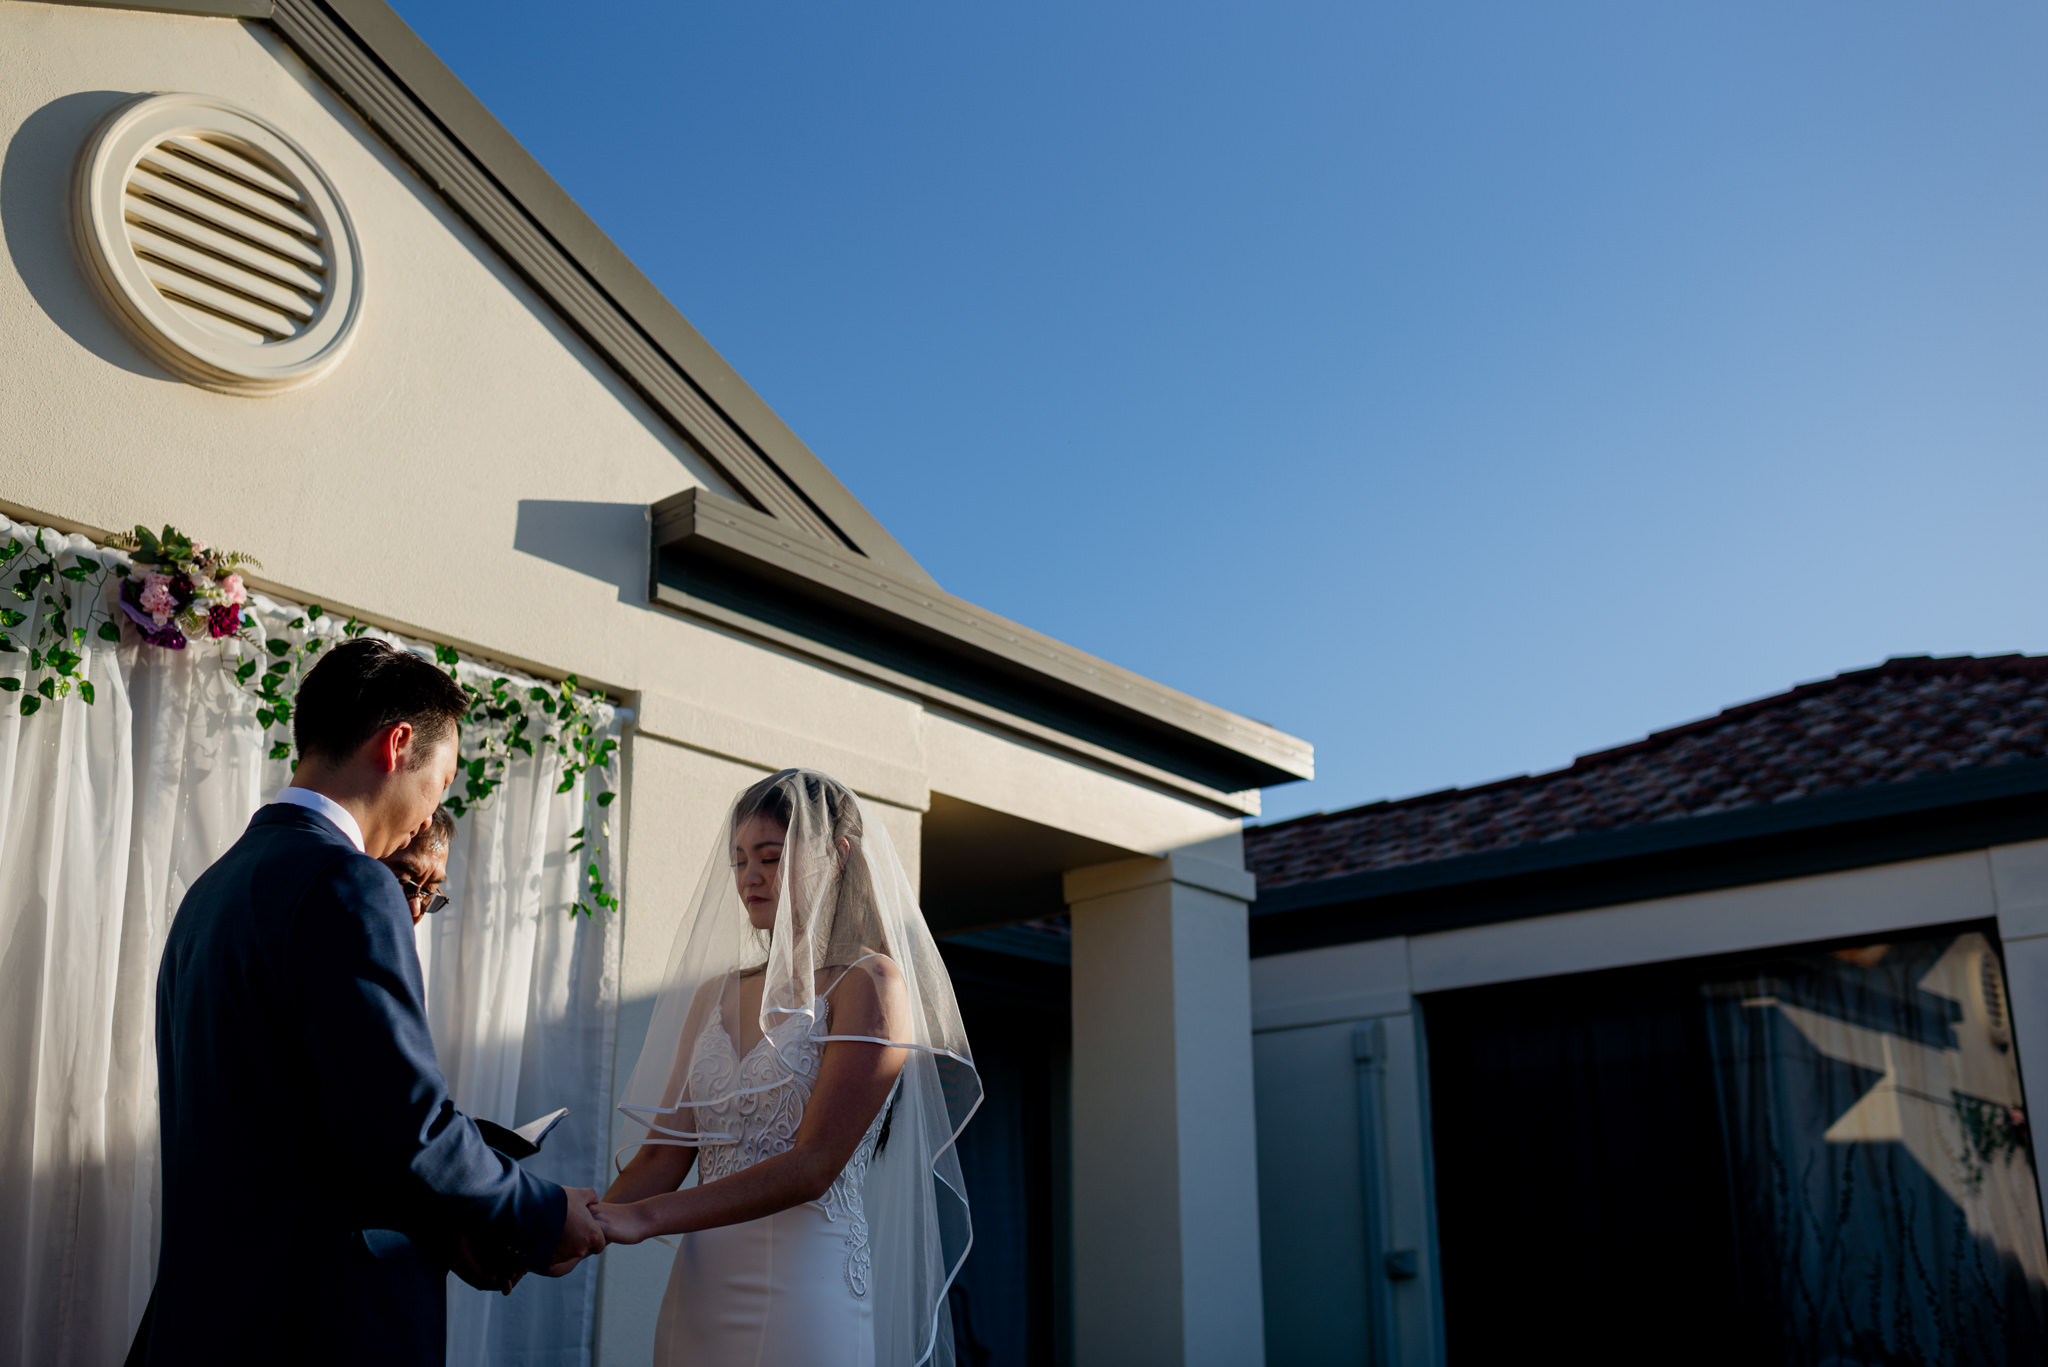 A bride closes her eyes as she holds hands with her groom in front of a small home